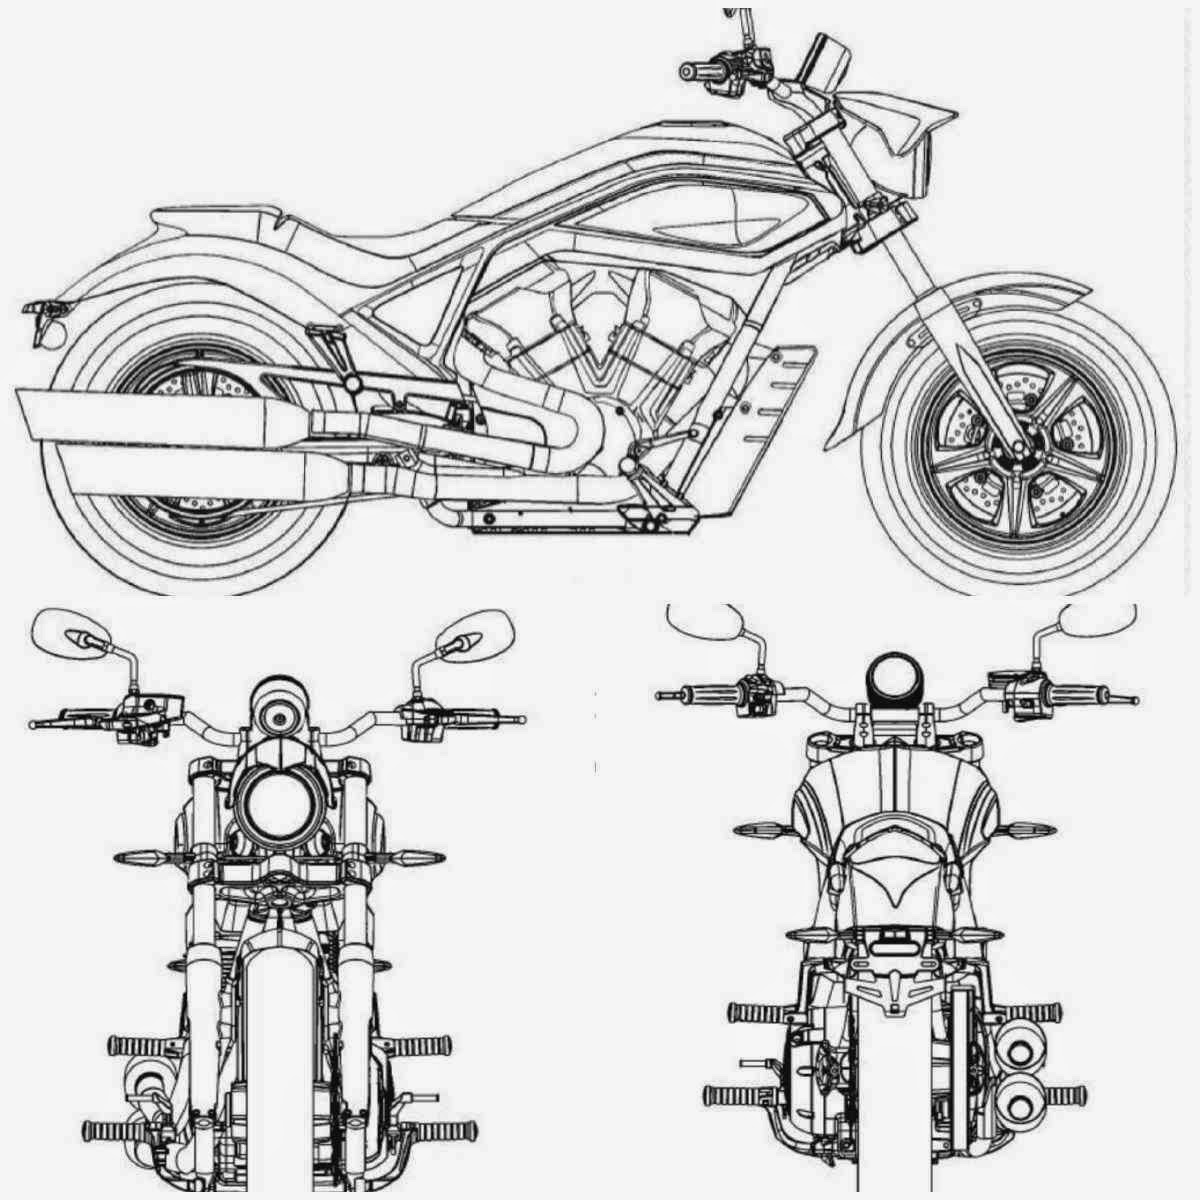 Bmw R1200rt Wiring Diagram Citroen C Hpi Engine 2011 Rrt Discover Your 2007 R1200gs